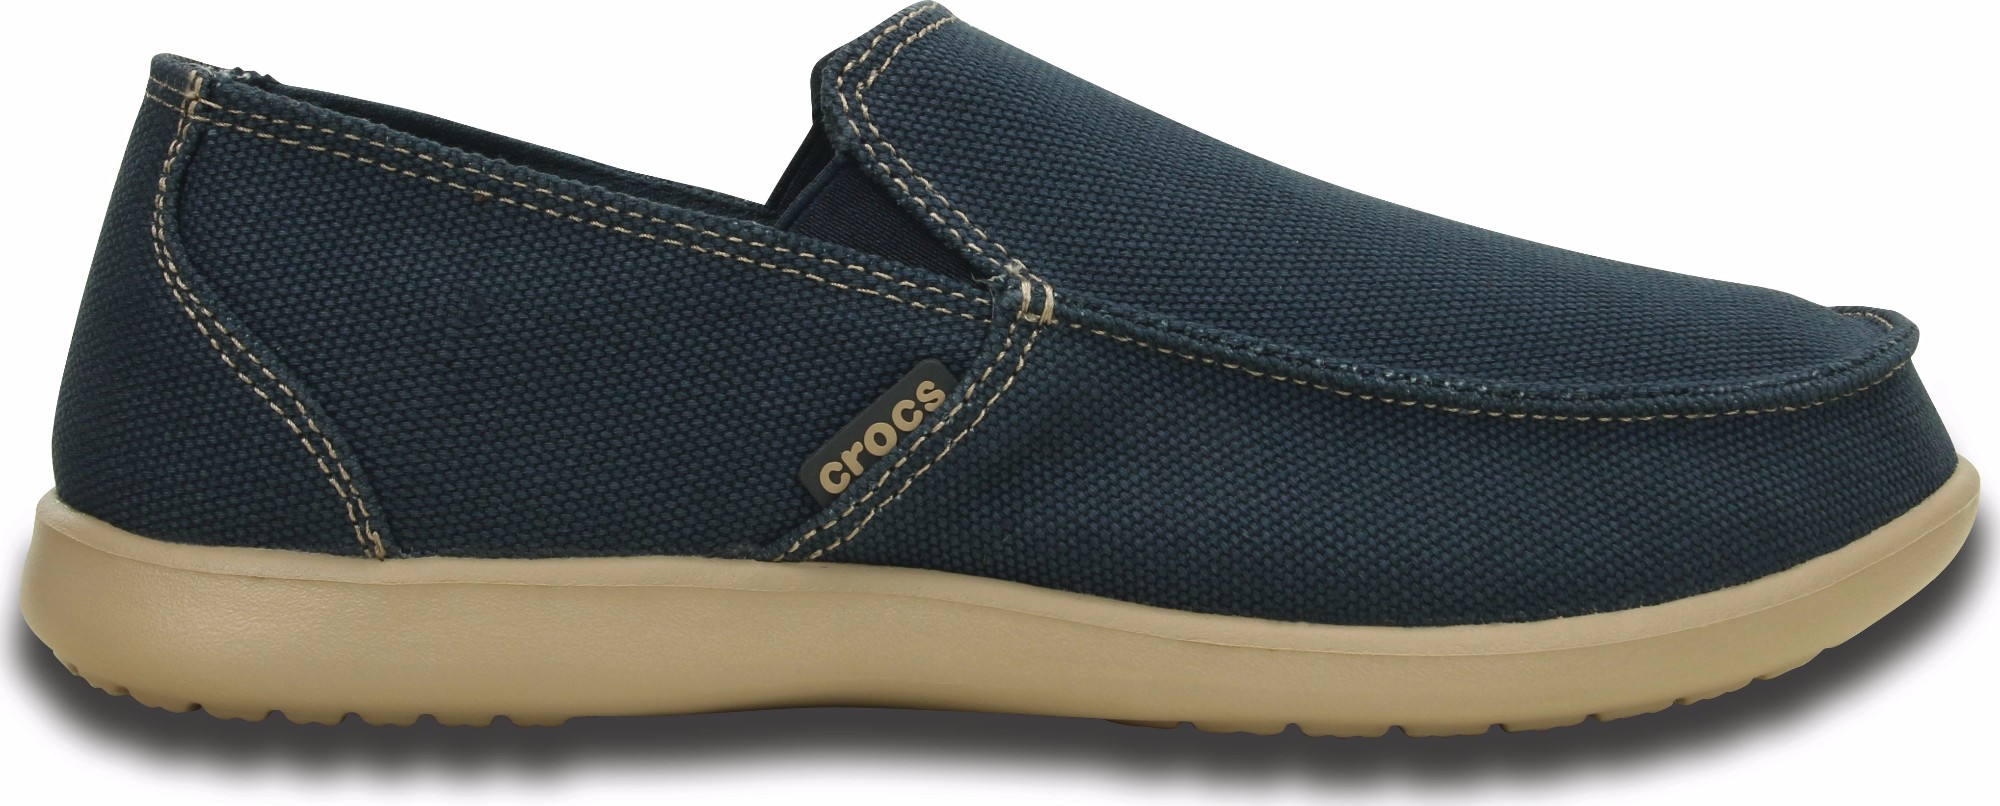 Crocs™ Santa Cruz Clean Cut Loafer Navy/Tumbleweed 43,5